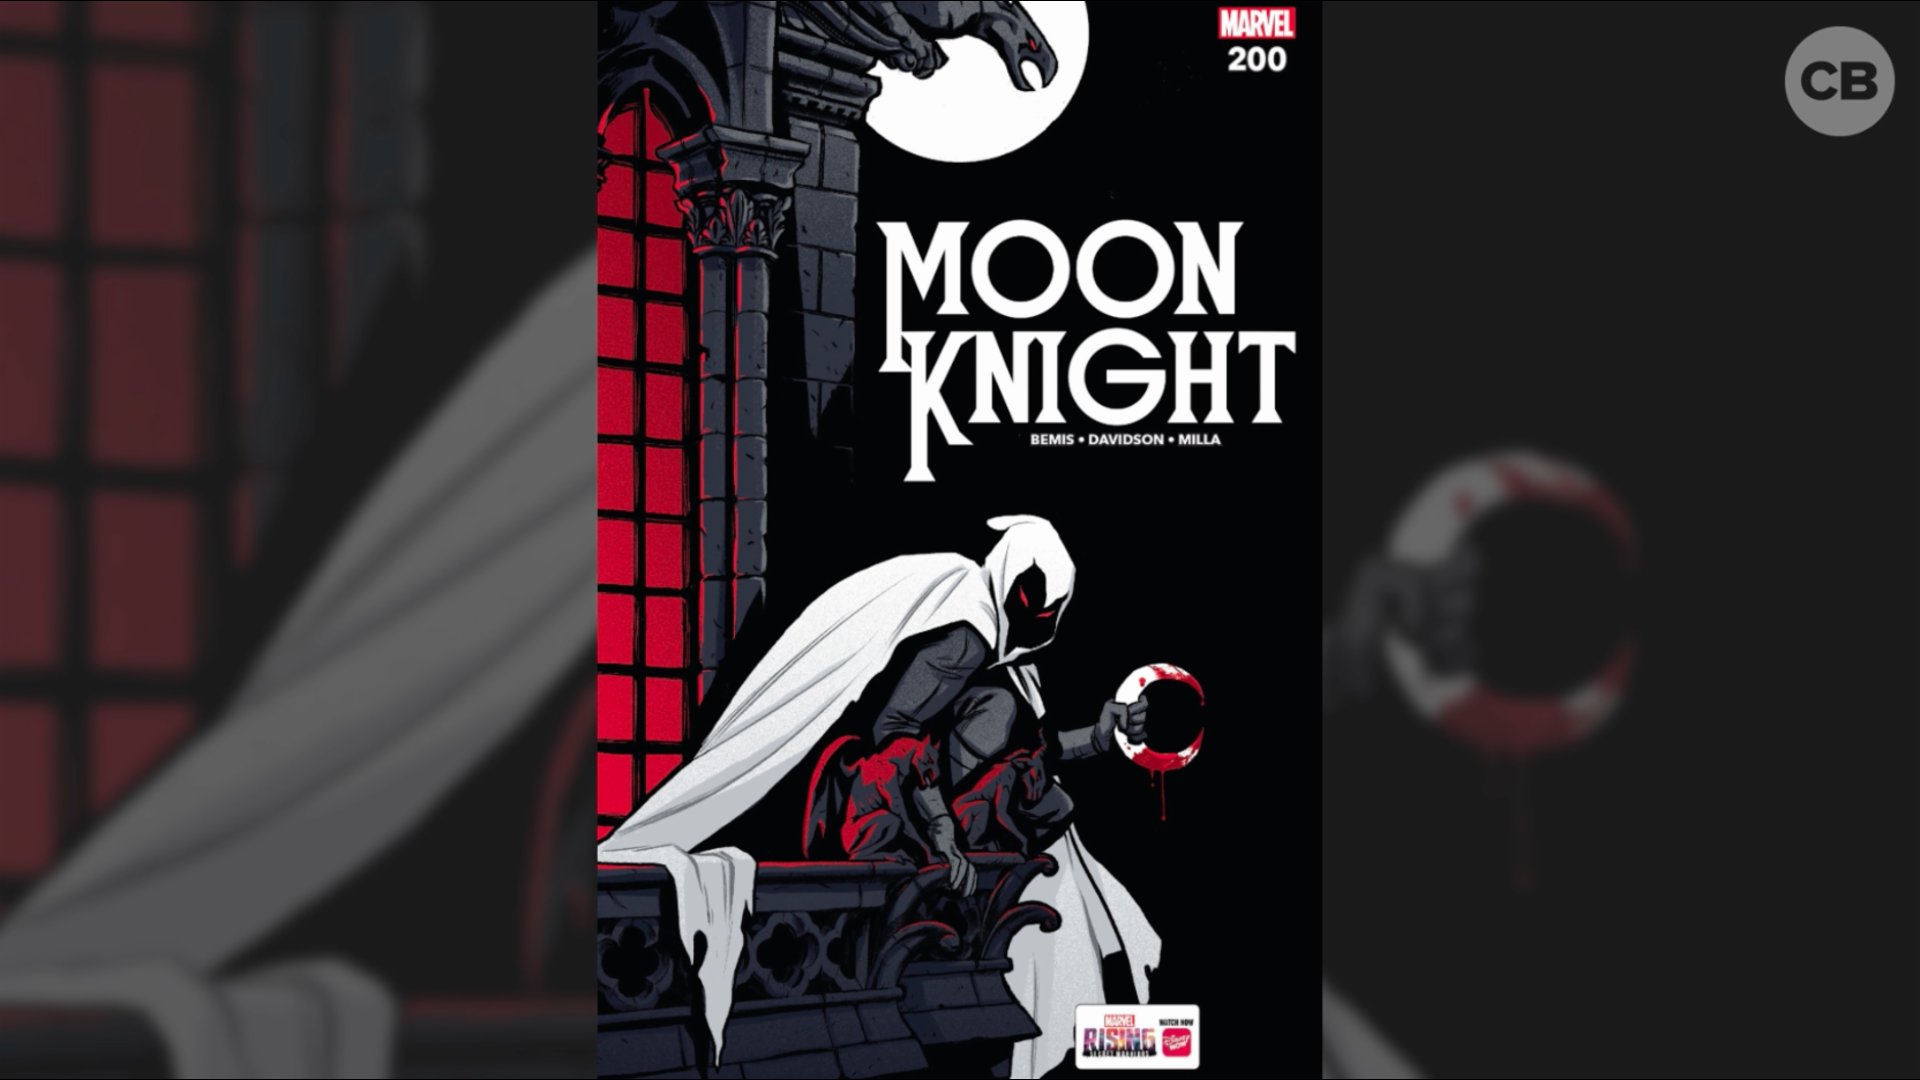 This Week in Comics: Moon Knight #200 screen capture